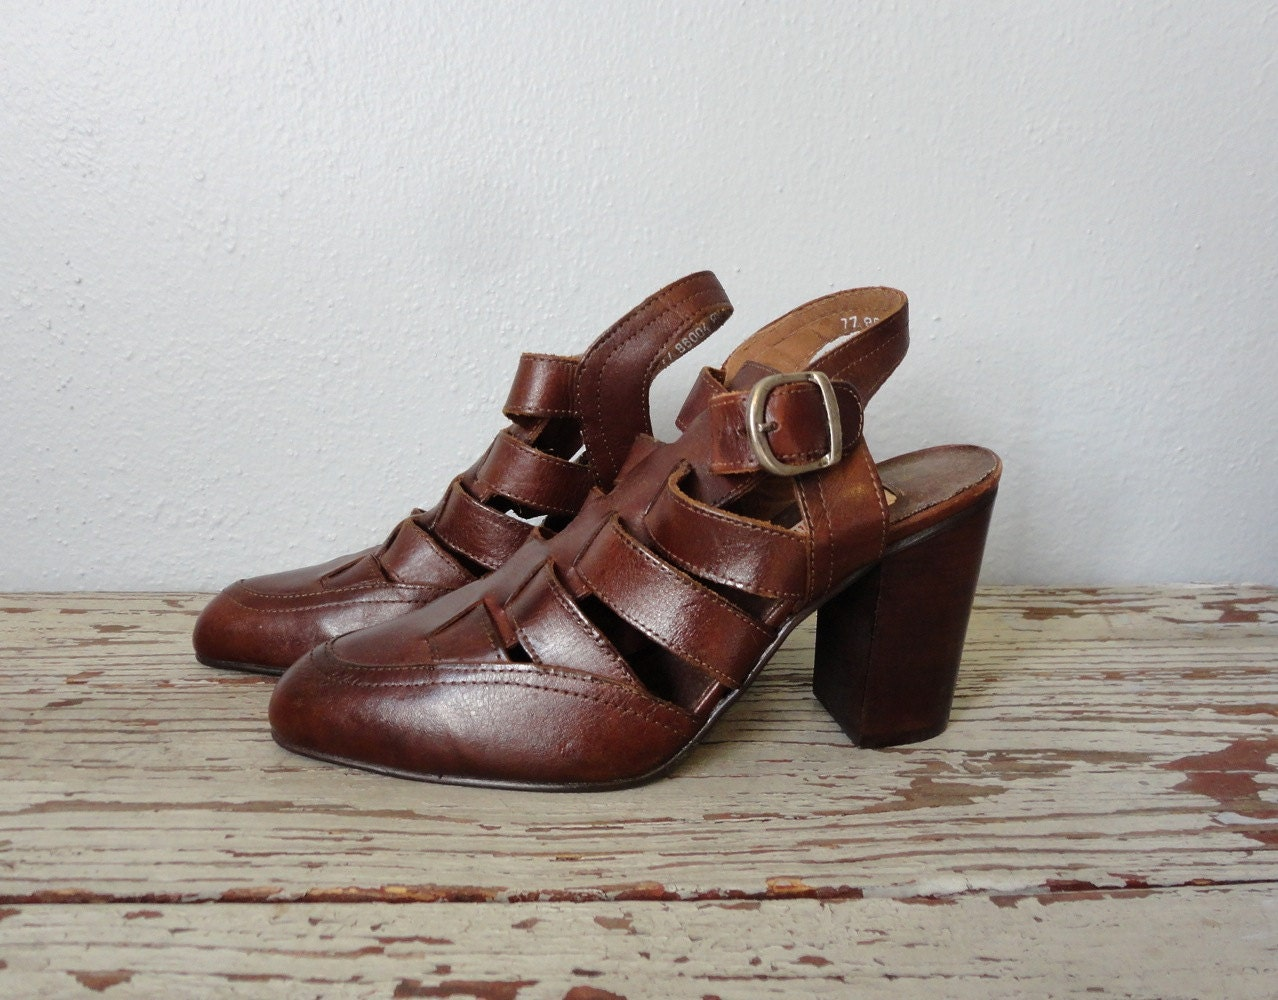 Vintage WILD PAIR Shoes / 1990s Cage Heels / Brown Leather Stacked